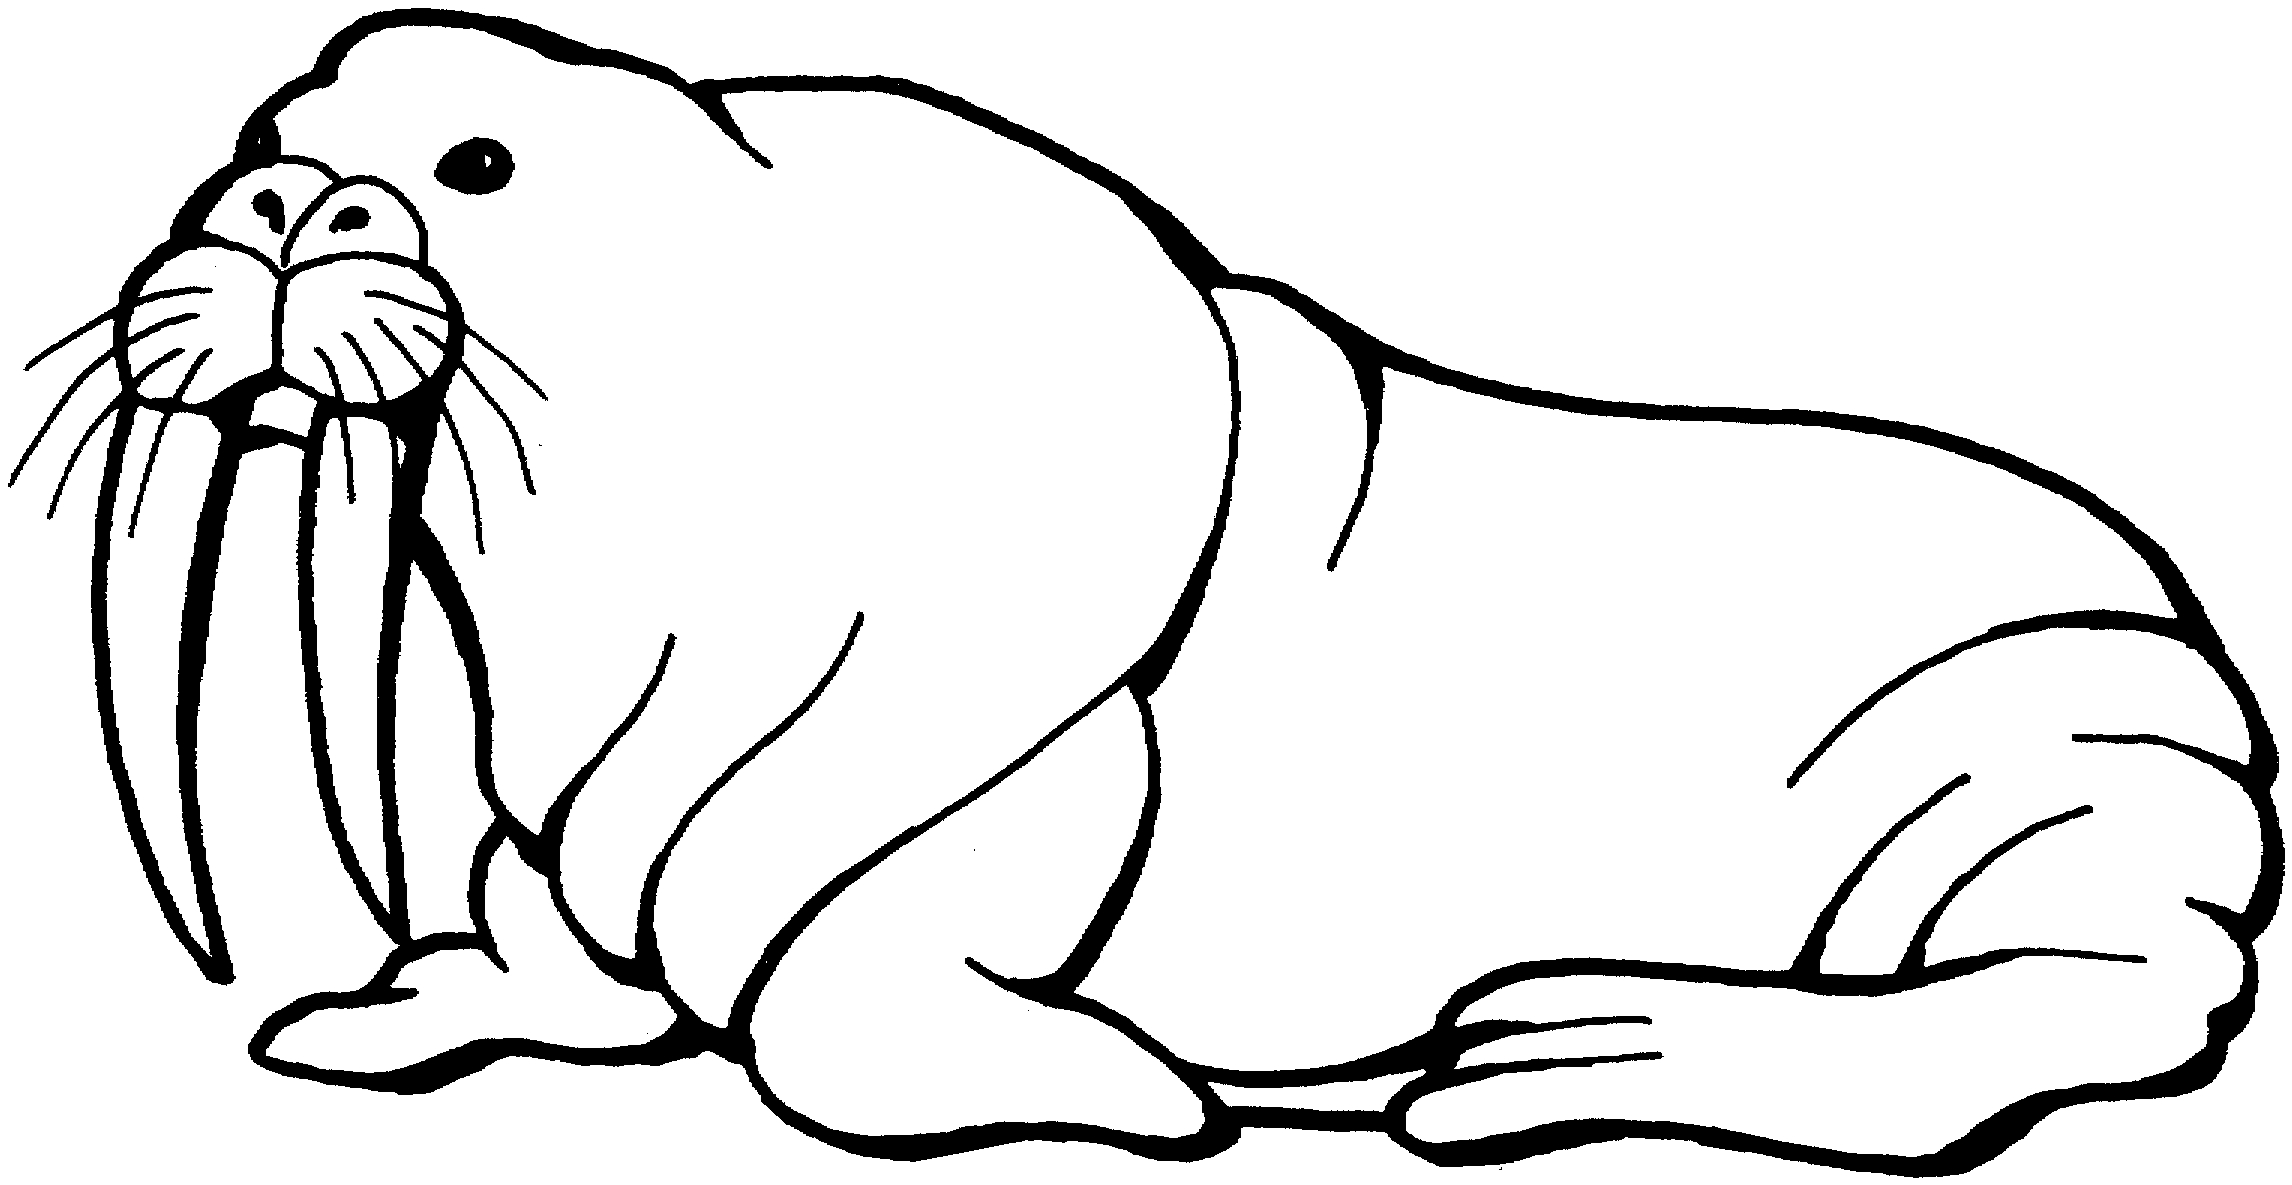 Walrus clipart. New collection digital coloring